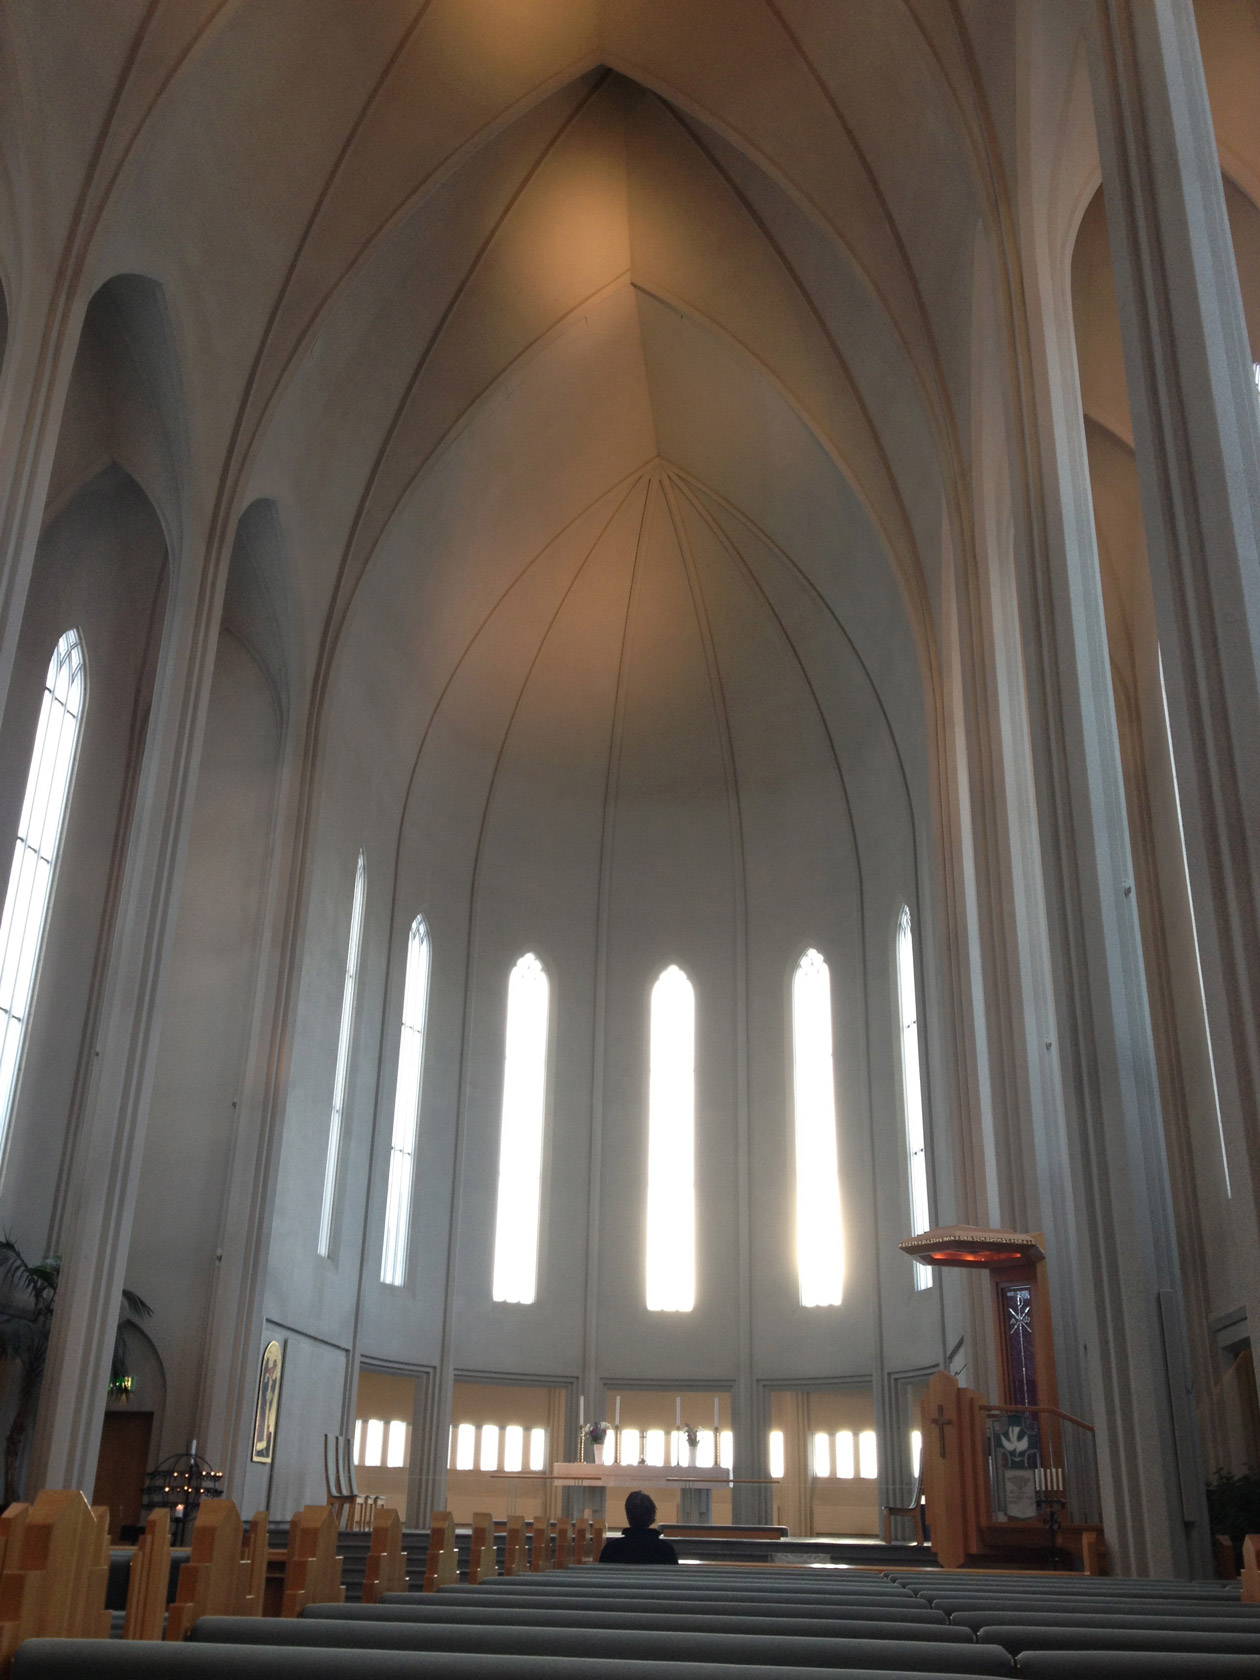 Inside Hallgrímskirkja. It's very peaceful.